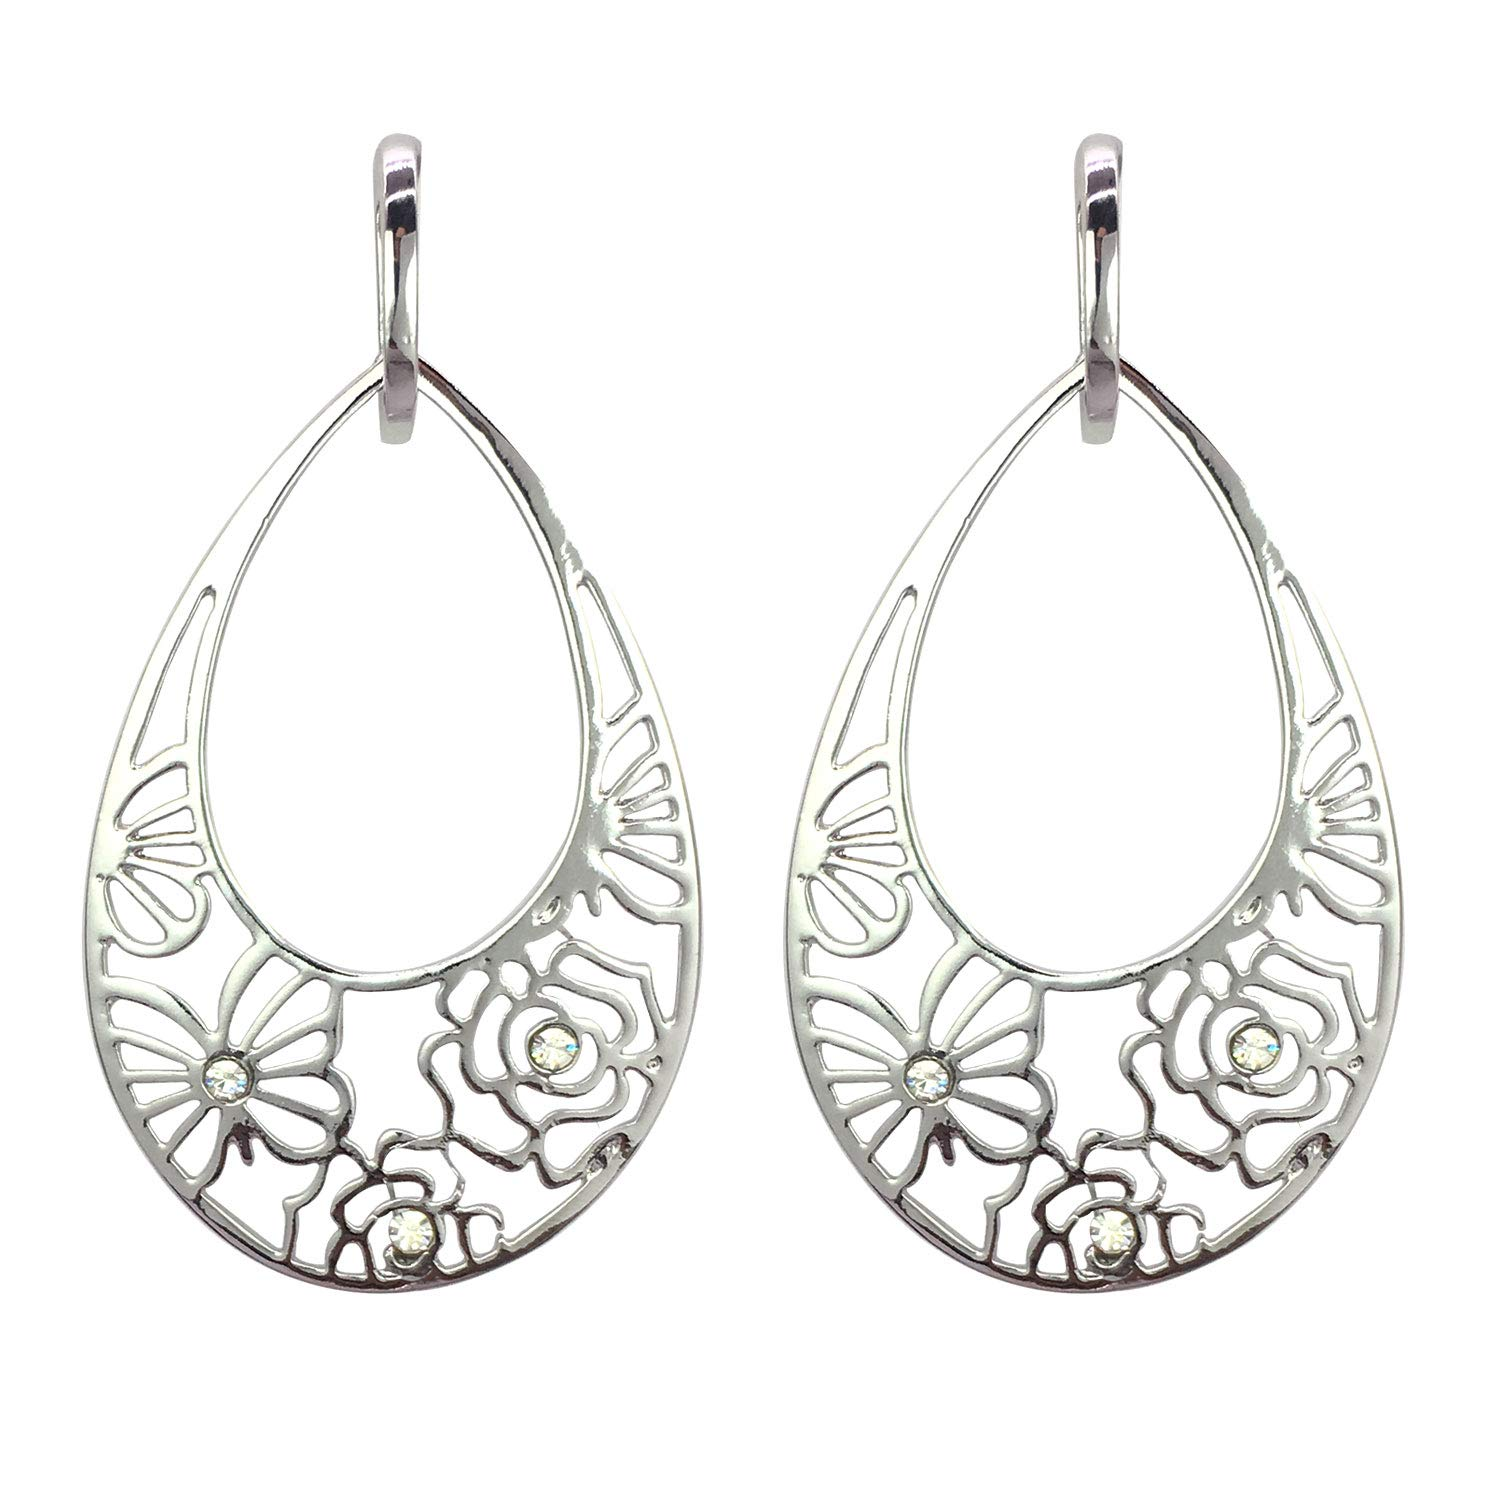 JHWZAIY Teardrop Earrings Dangle Drop Earrings for Women /& Girls Jewelry